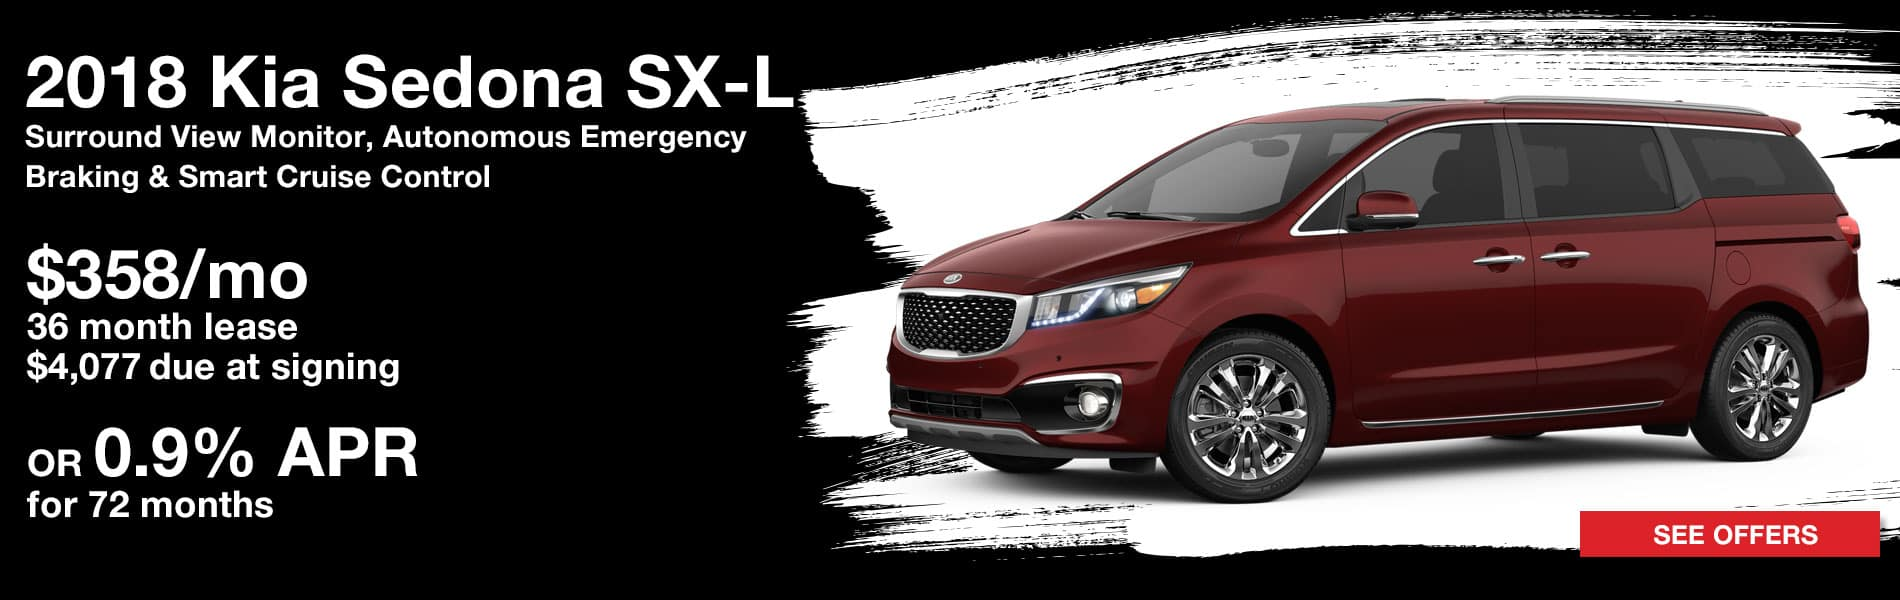 Lease a 2018 Kia Sedona SX-L for $358 per month with $4,077 due at signing